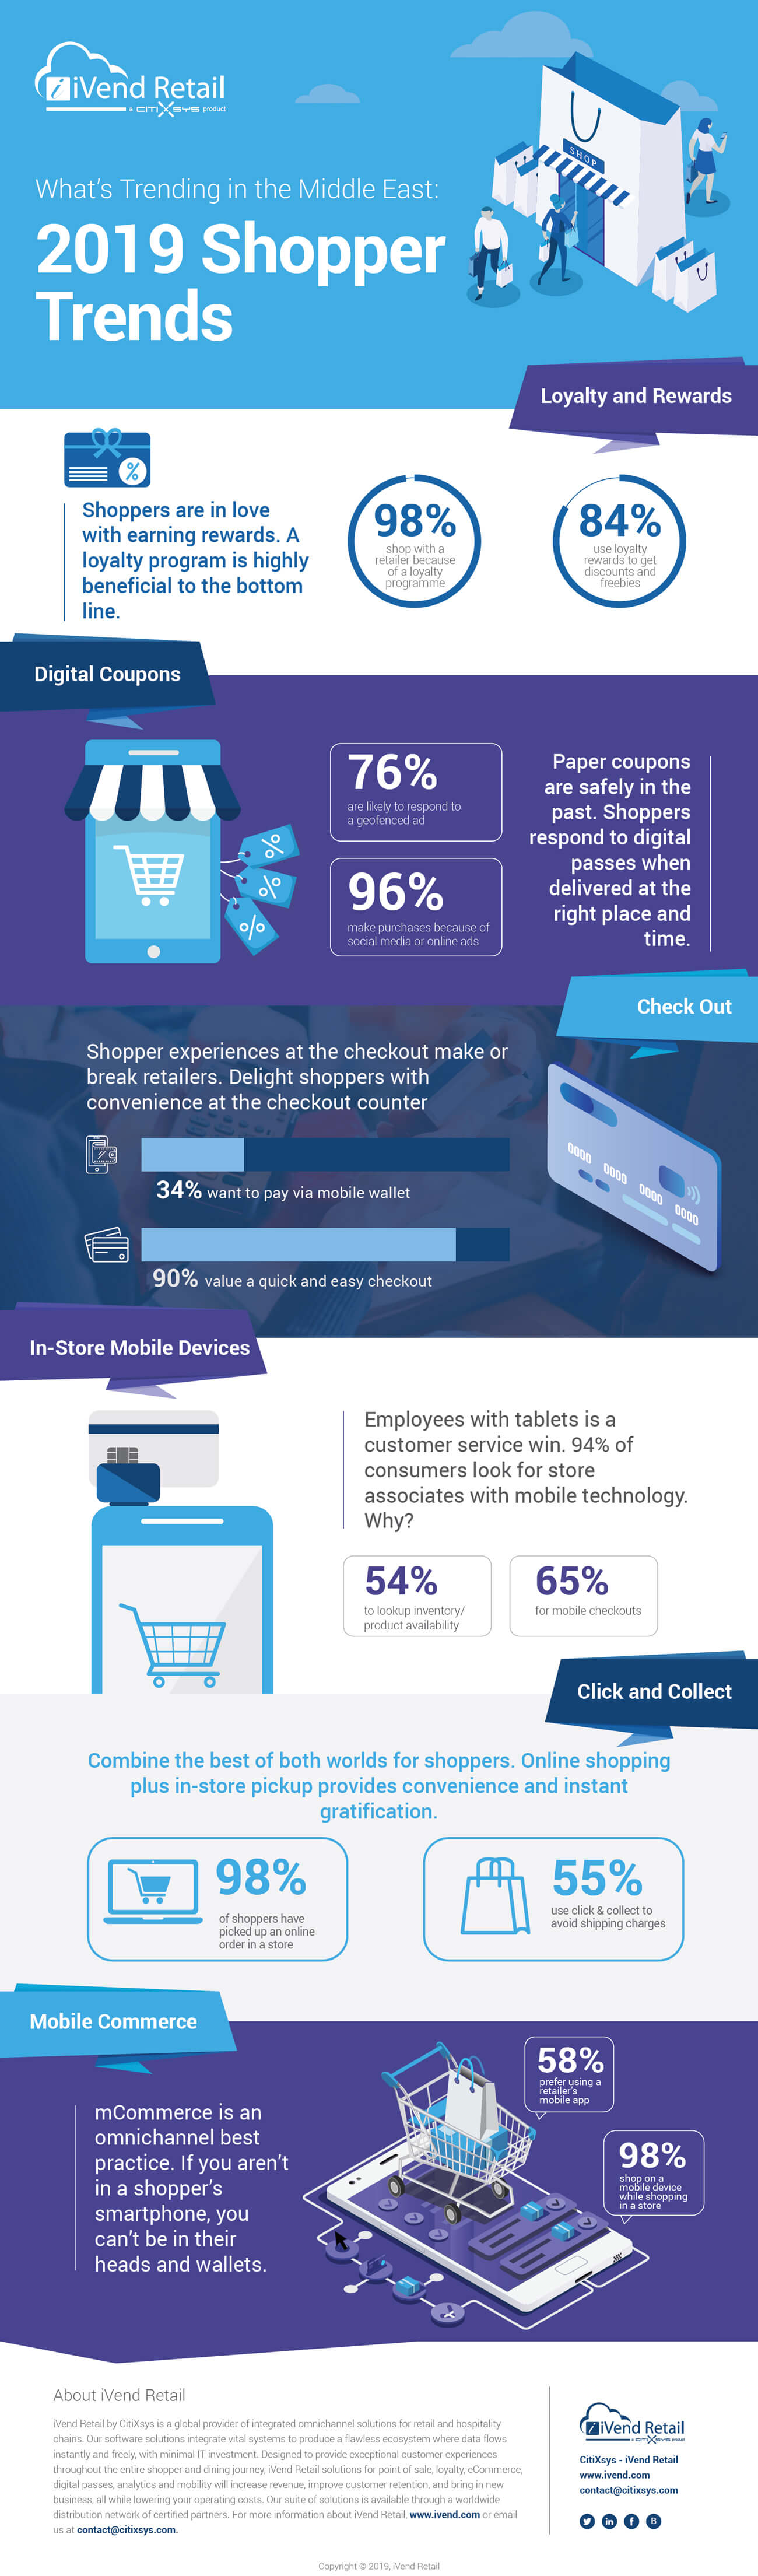 2019 Global Shopper Trends - Middle East - Infographic